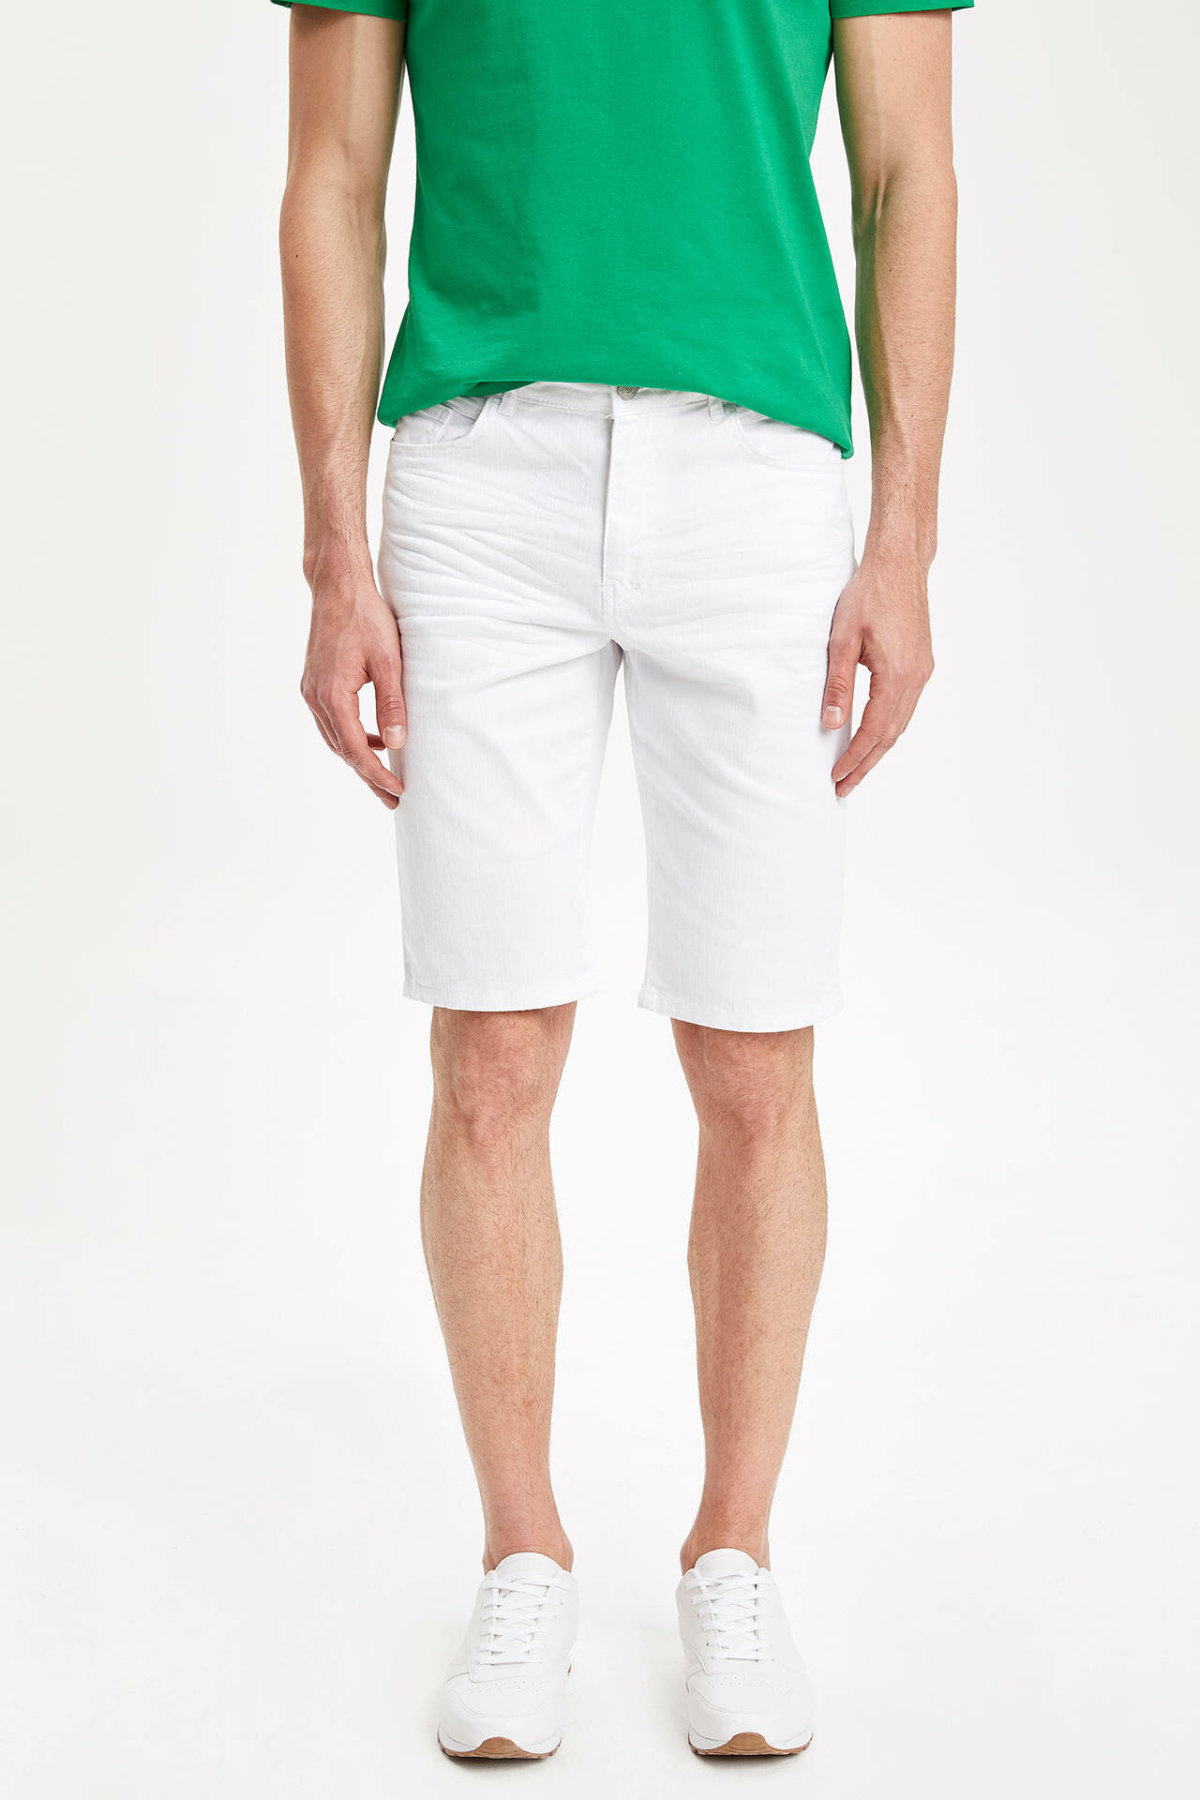 DeFacto Man Summer White Casual Shorts Men Skinny Fit Short Bottoms Male Bermuda Shorts-K6788AZ19SM